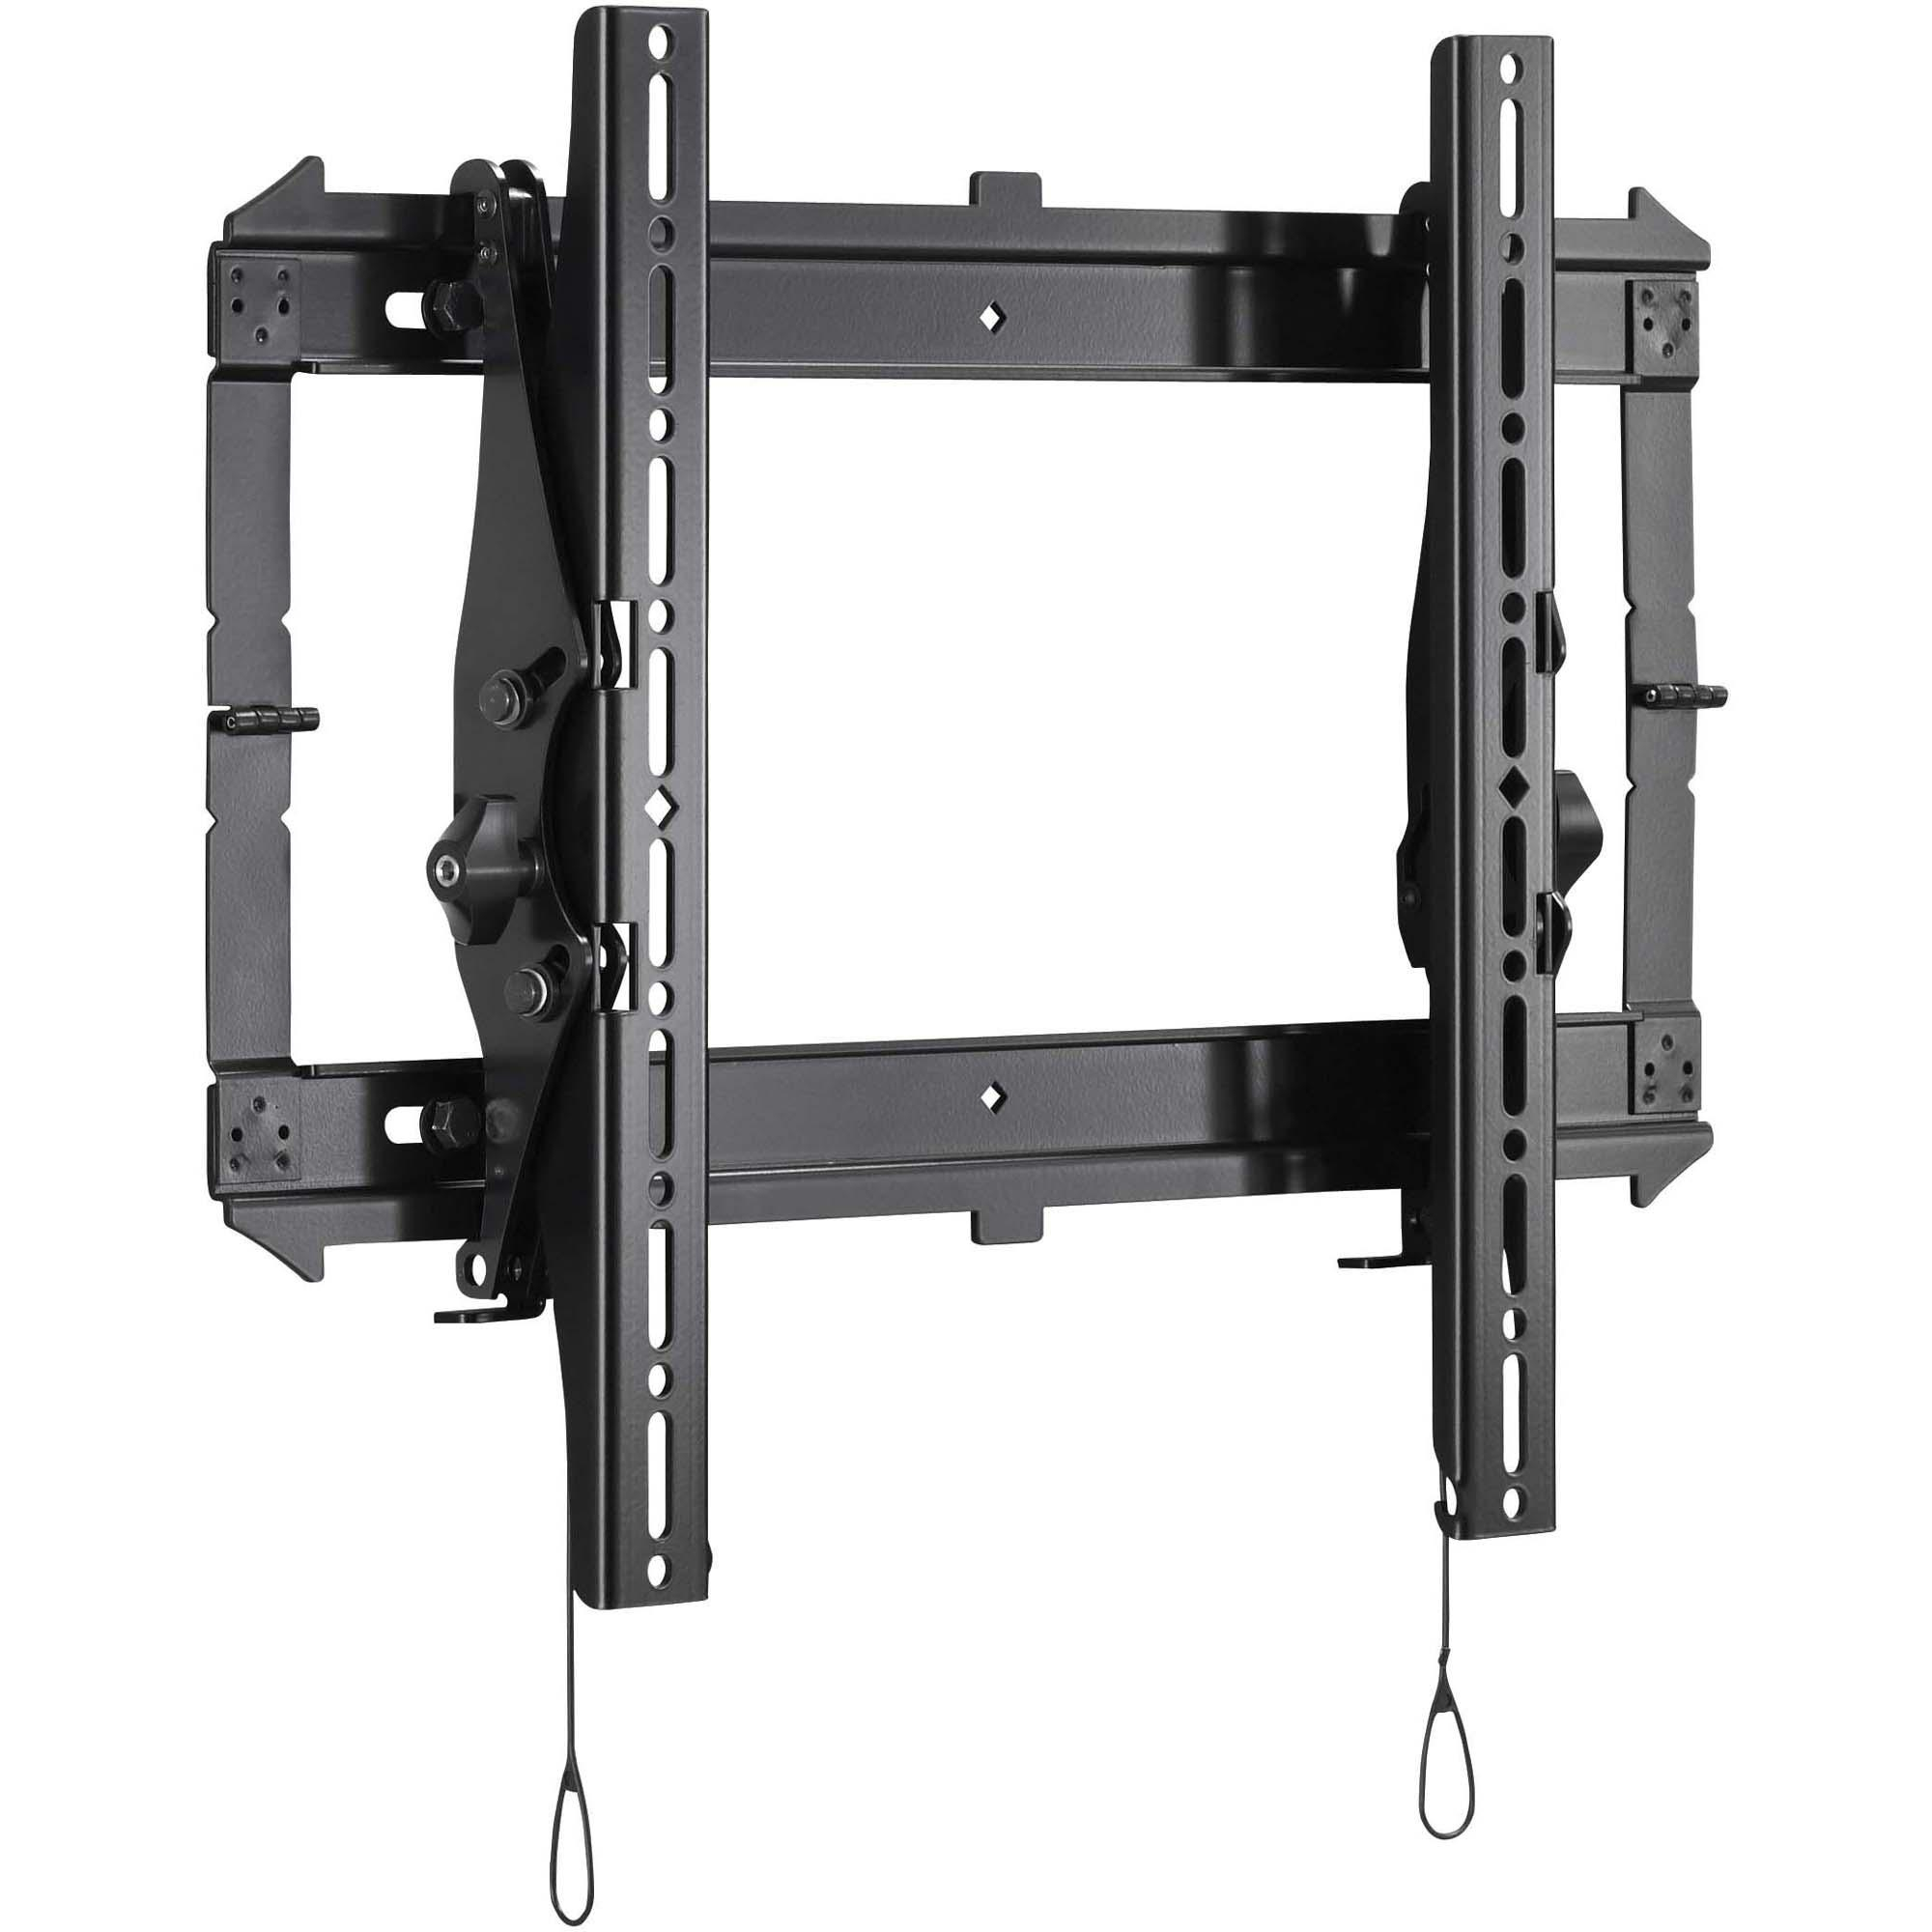 "Chief iCMPTM3B03 Wall Mount for Flat Panel Display - 26"" to 42"" (Refurbished)"